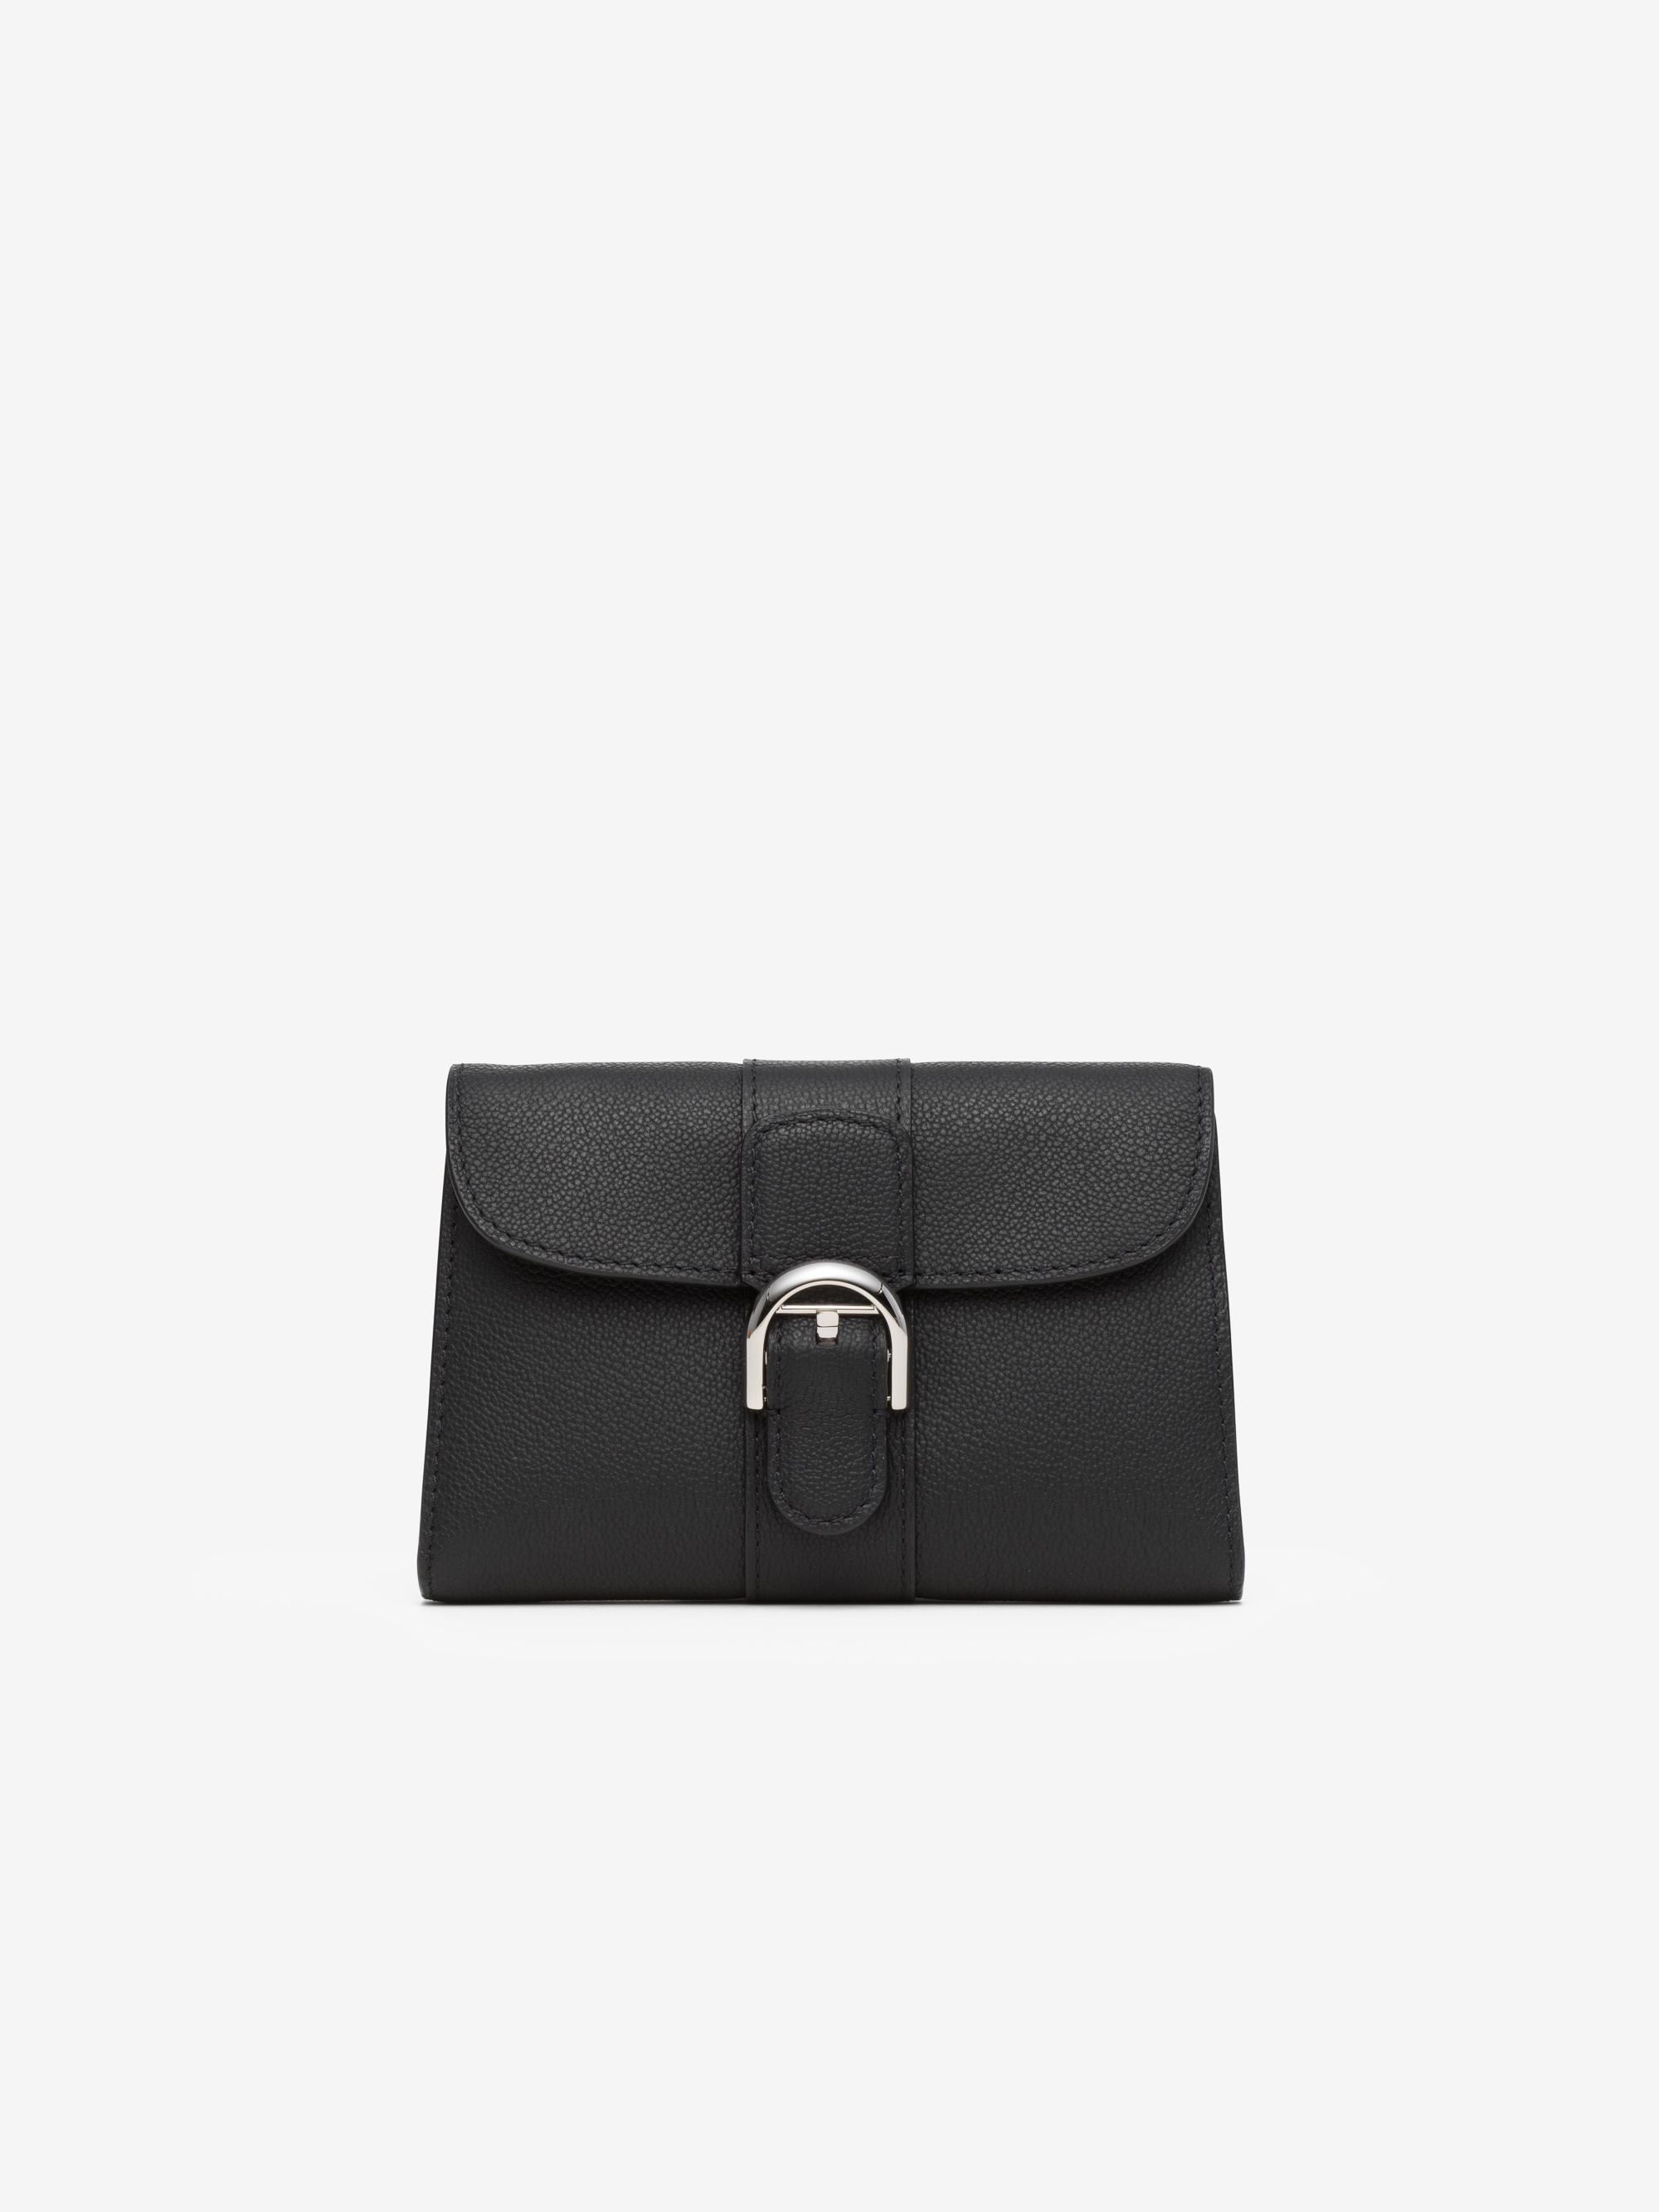 shop delvaux accessories